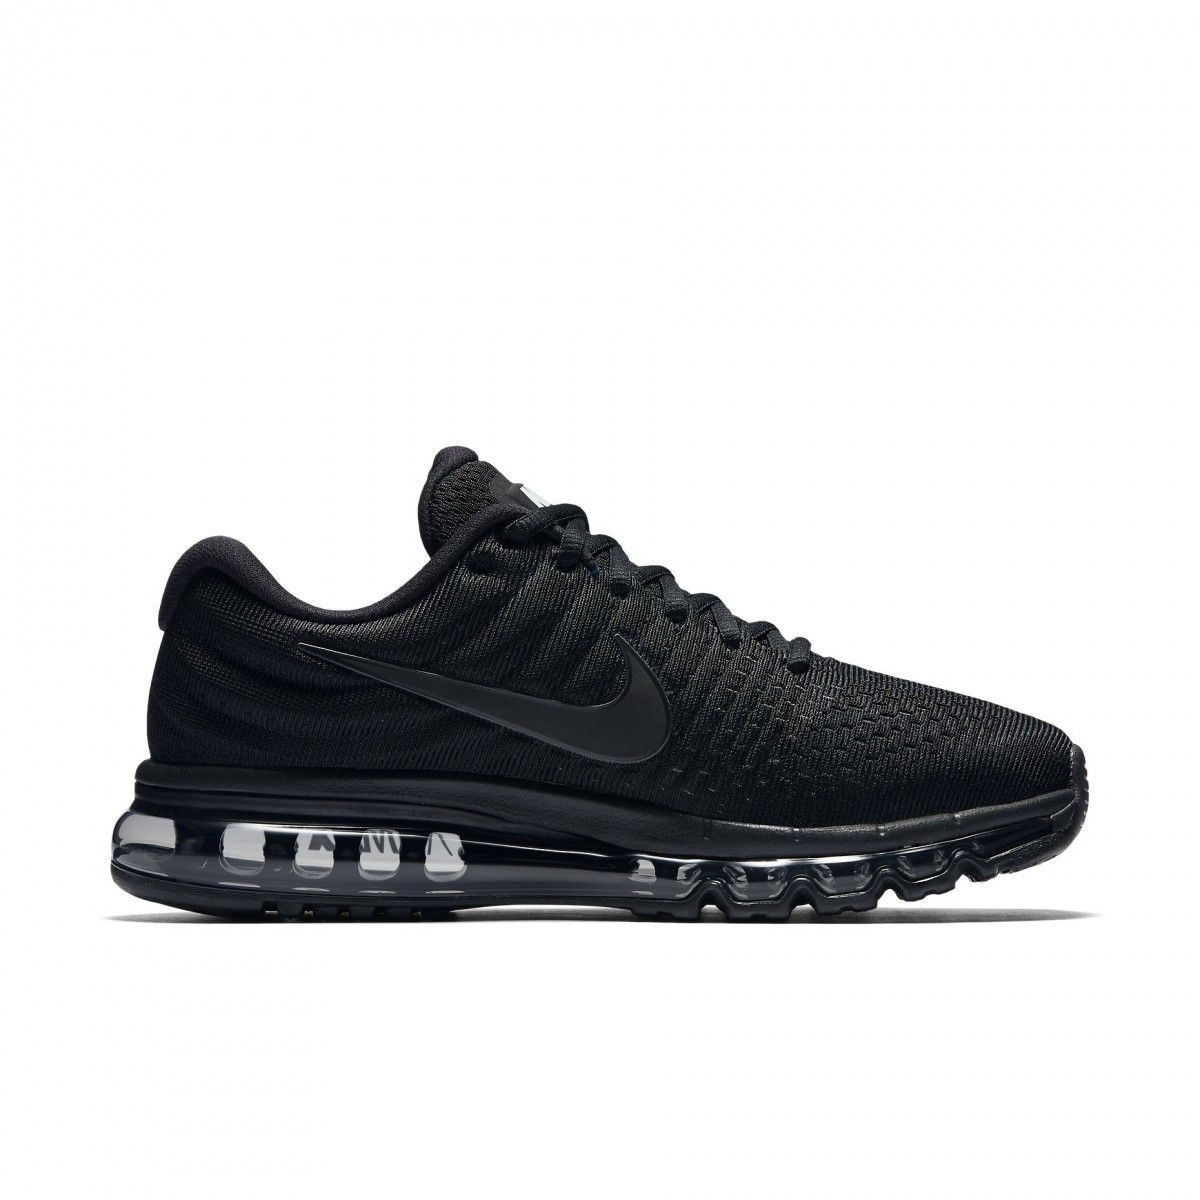 huge selection of 84e30 639f9 Baskets Nike Air Max 2017 Noir Homme - Taille   42 43 44 45 46 40 41 47